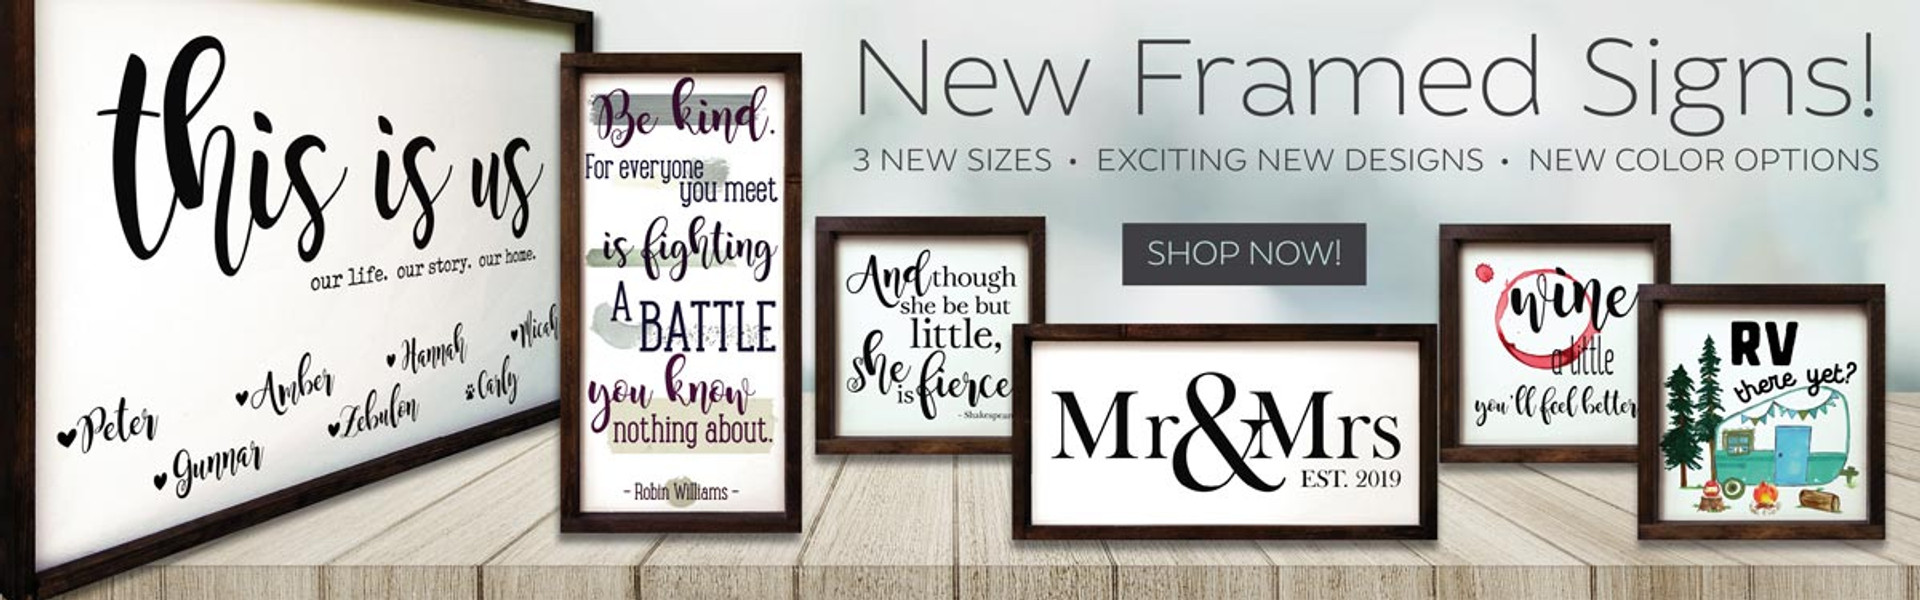 New Framed Signs - 3 New Sizes - New Designs - New Color Options!